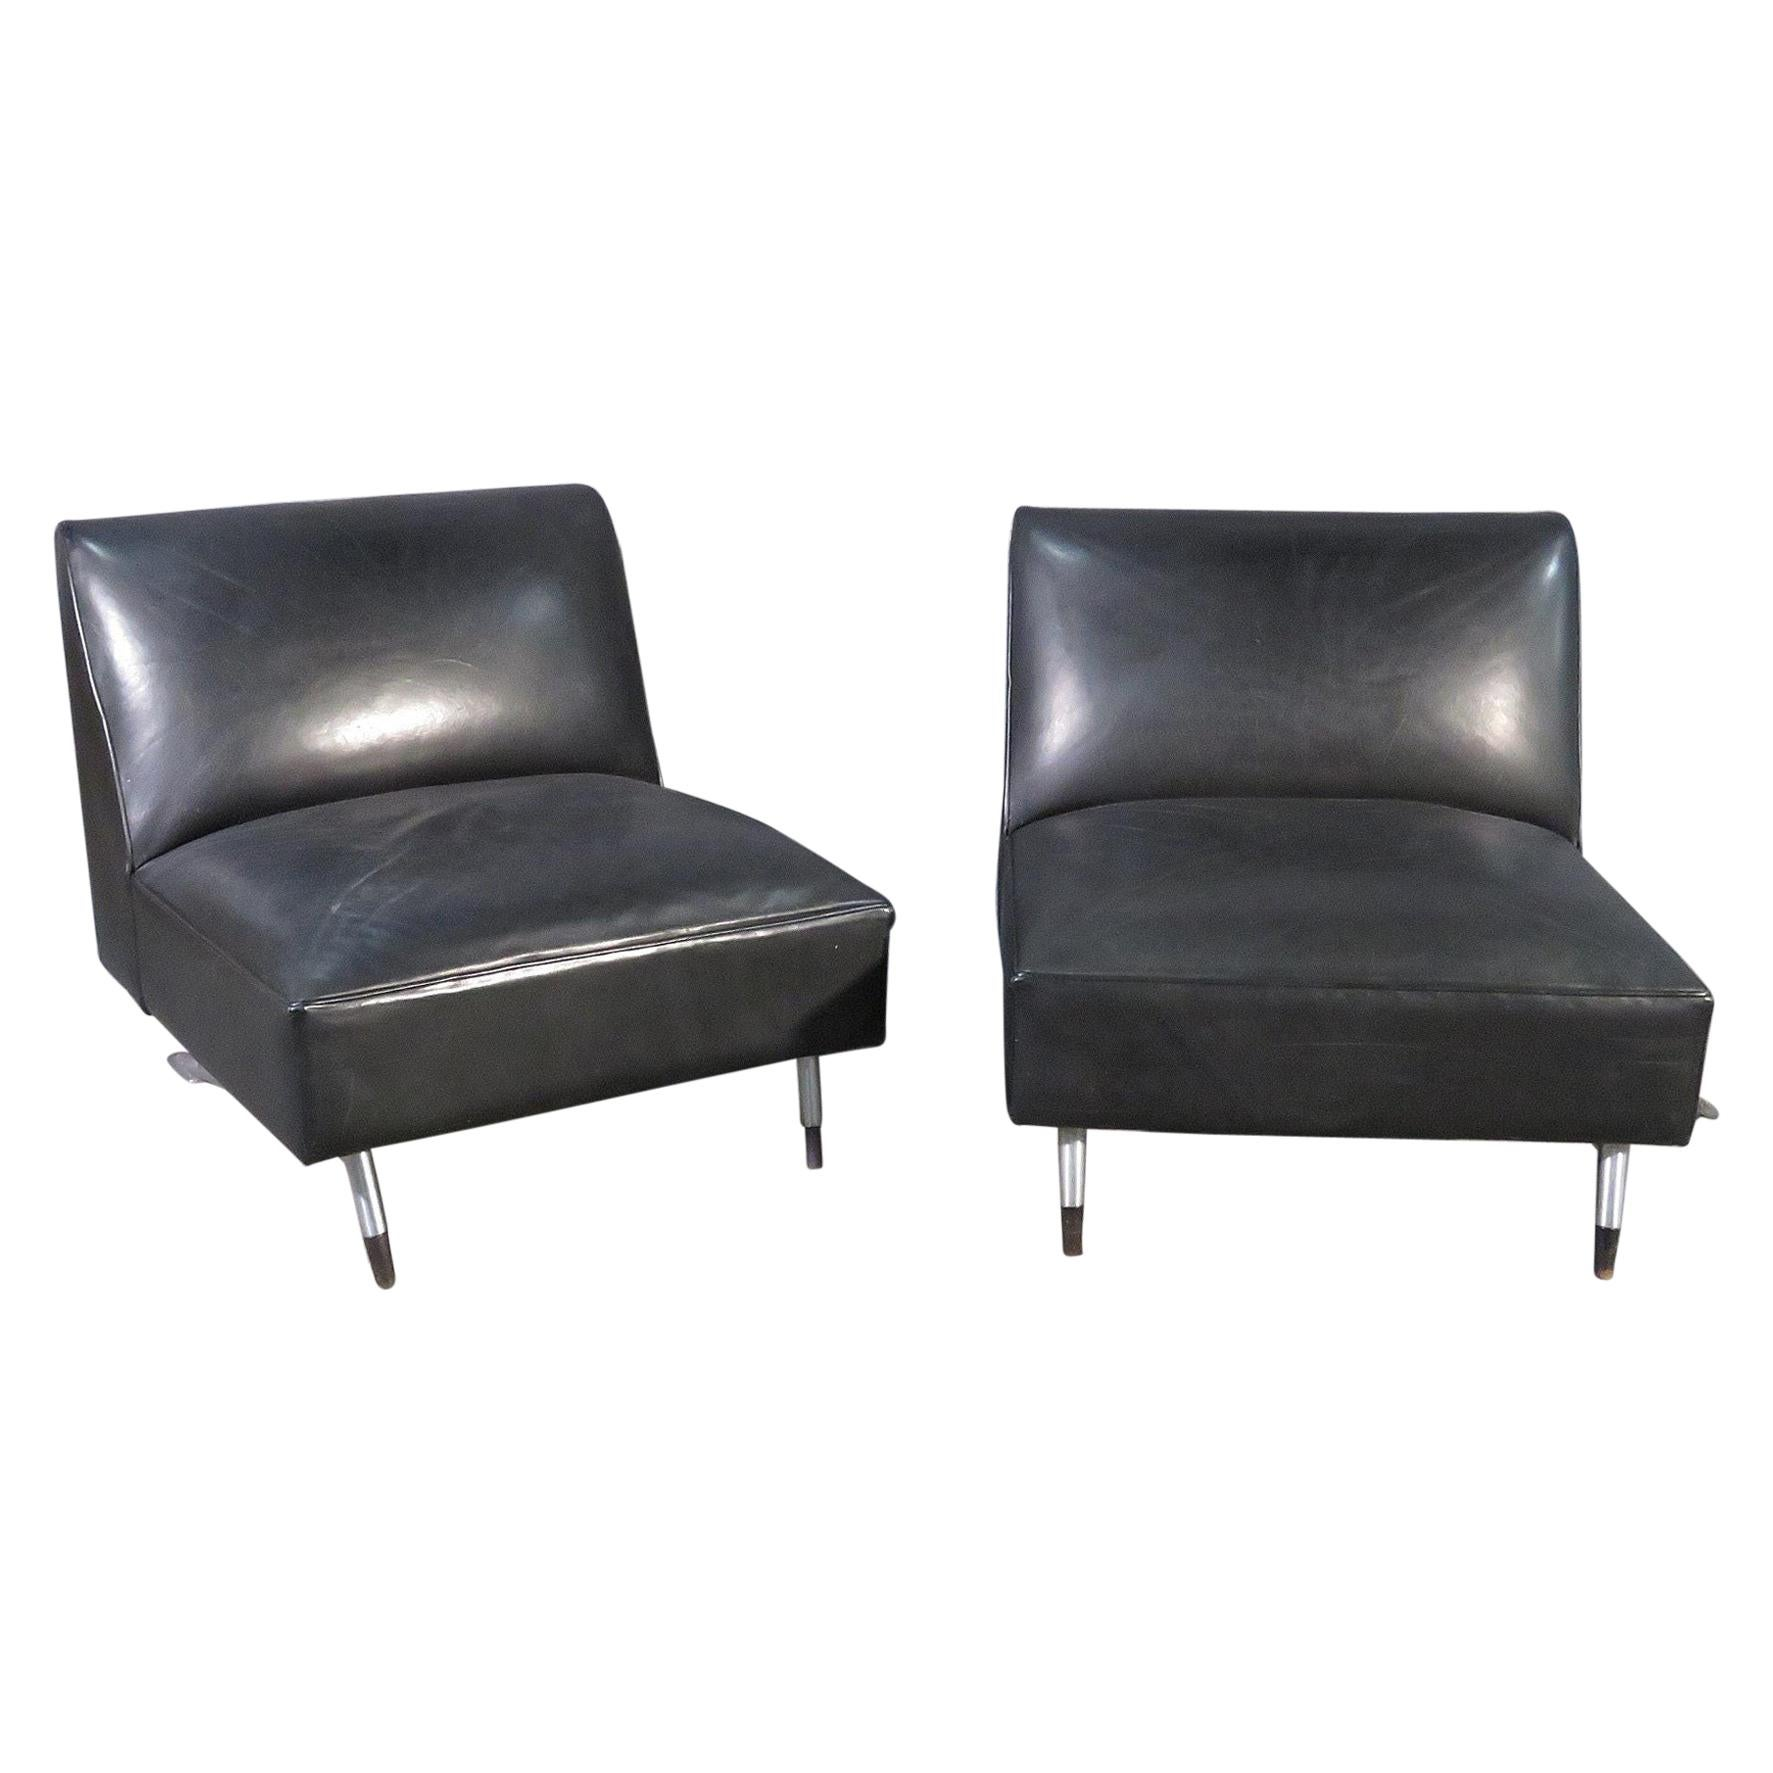 Pair of Leather Slipper Chairs